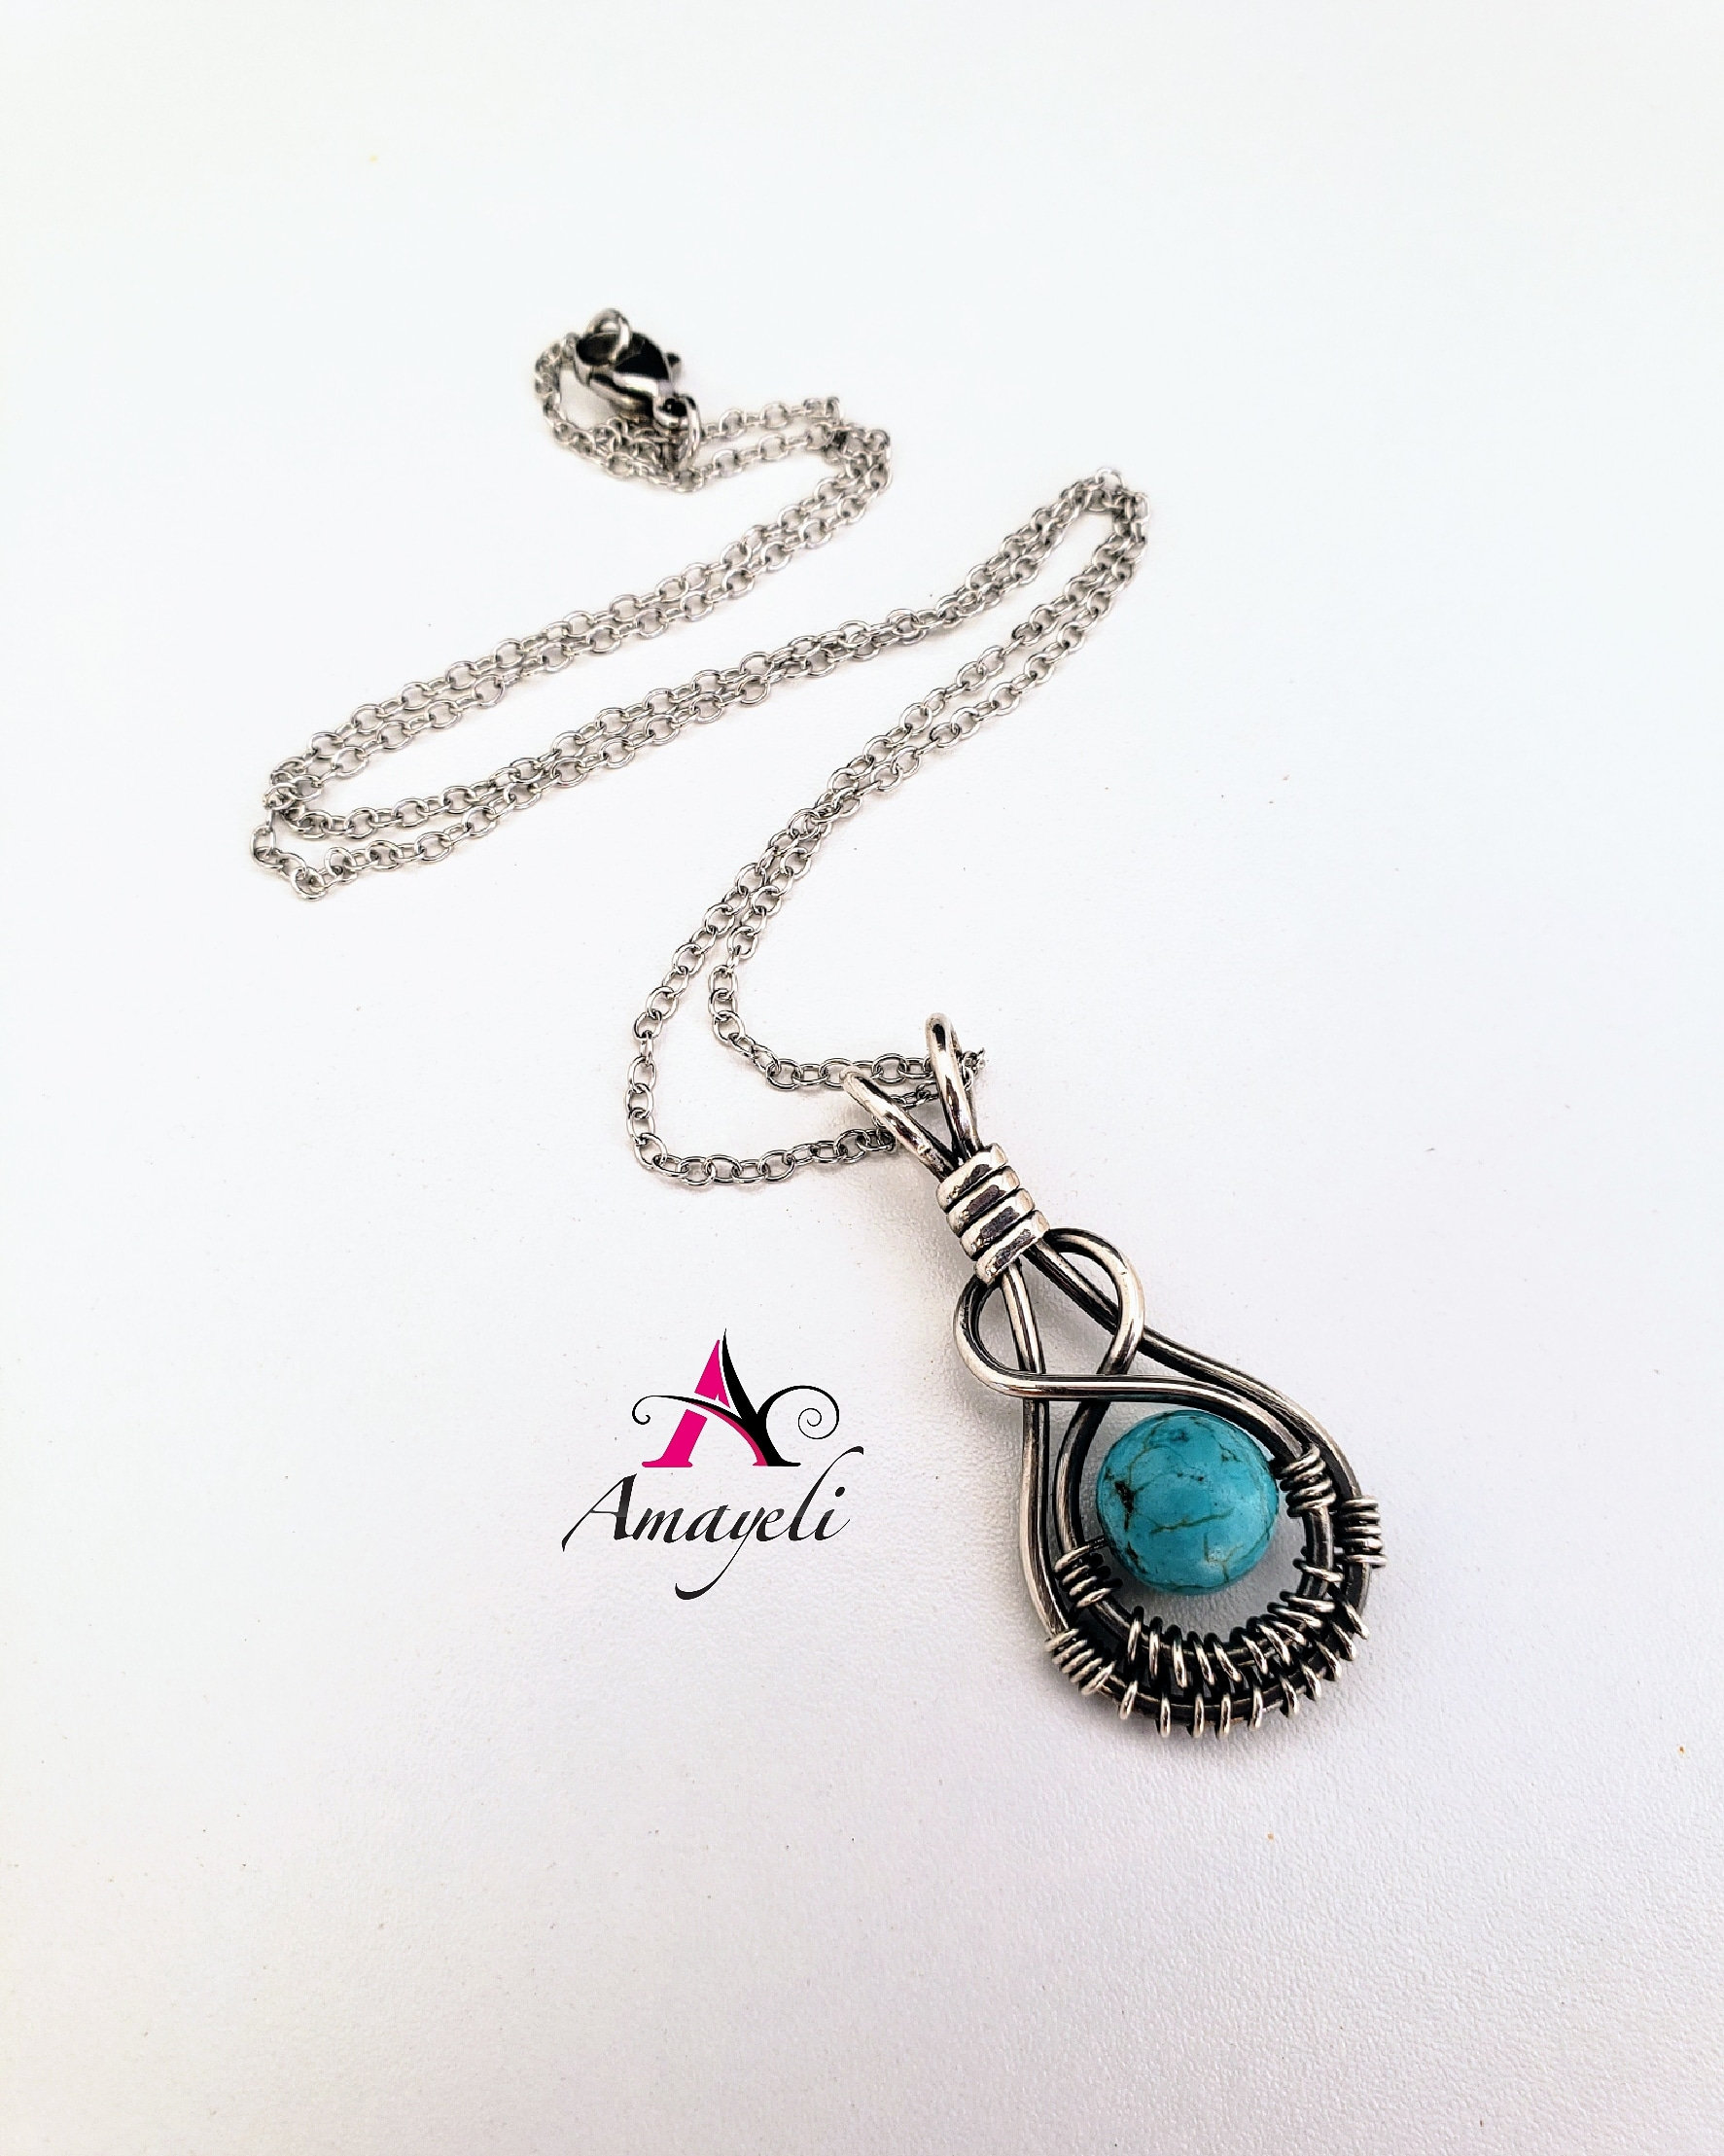 Jade Sterling Silver chain included and Opalite Psychic Protection Amulet wrapped in Sterling Silver wire with 18 in Labradorite